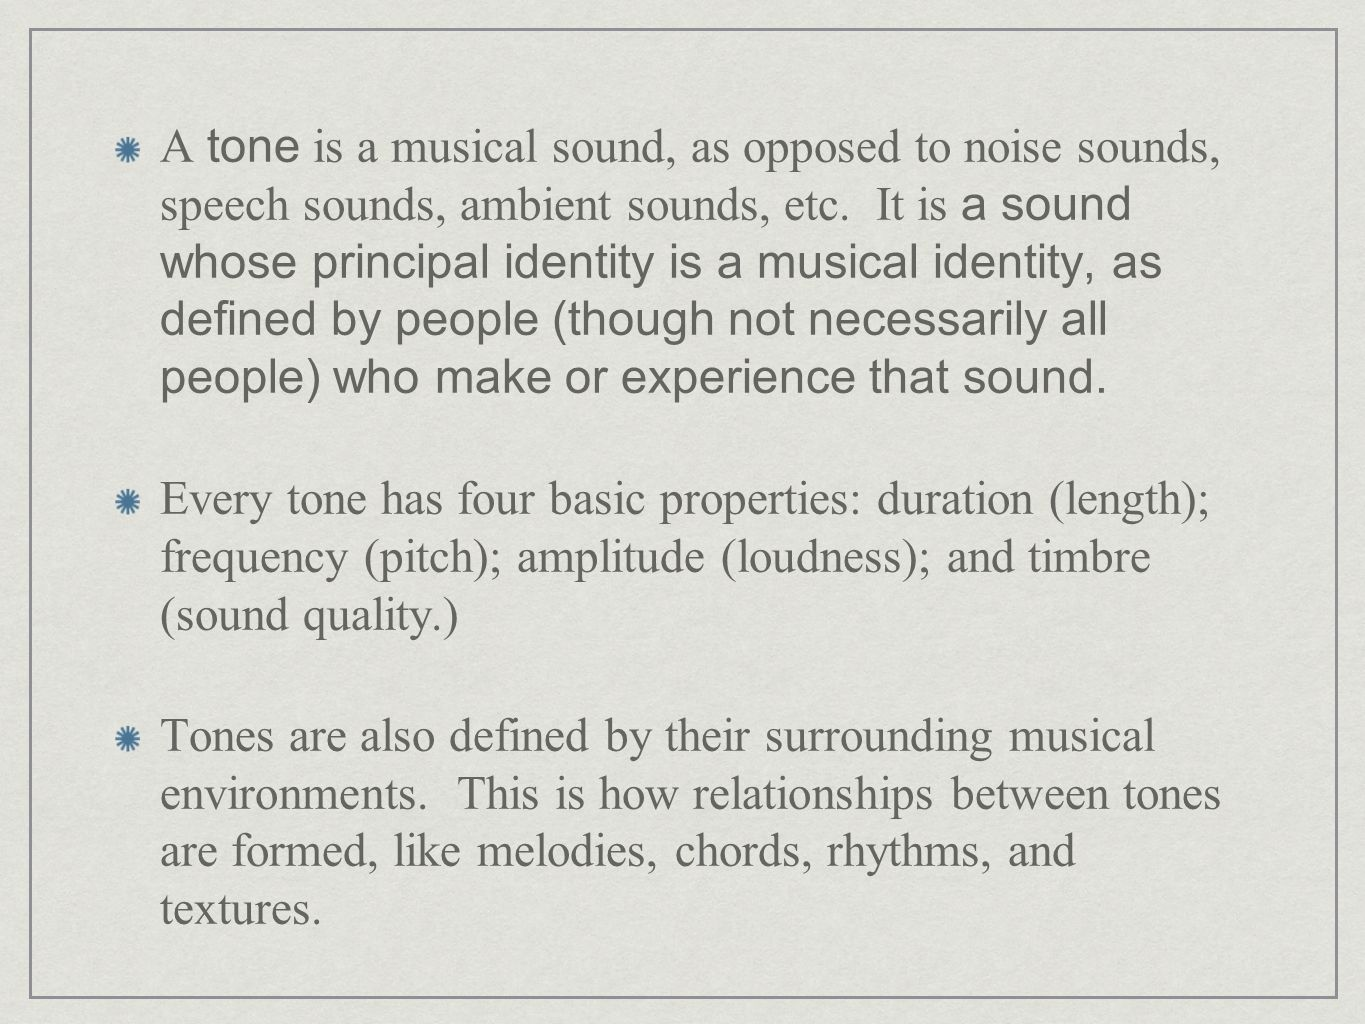 A tone is a musical sound, as opposed to noise sounds, speech sounds, ambient sounds, etc.